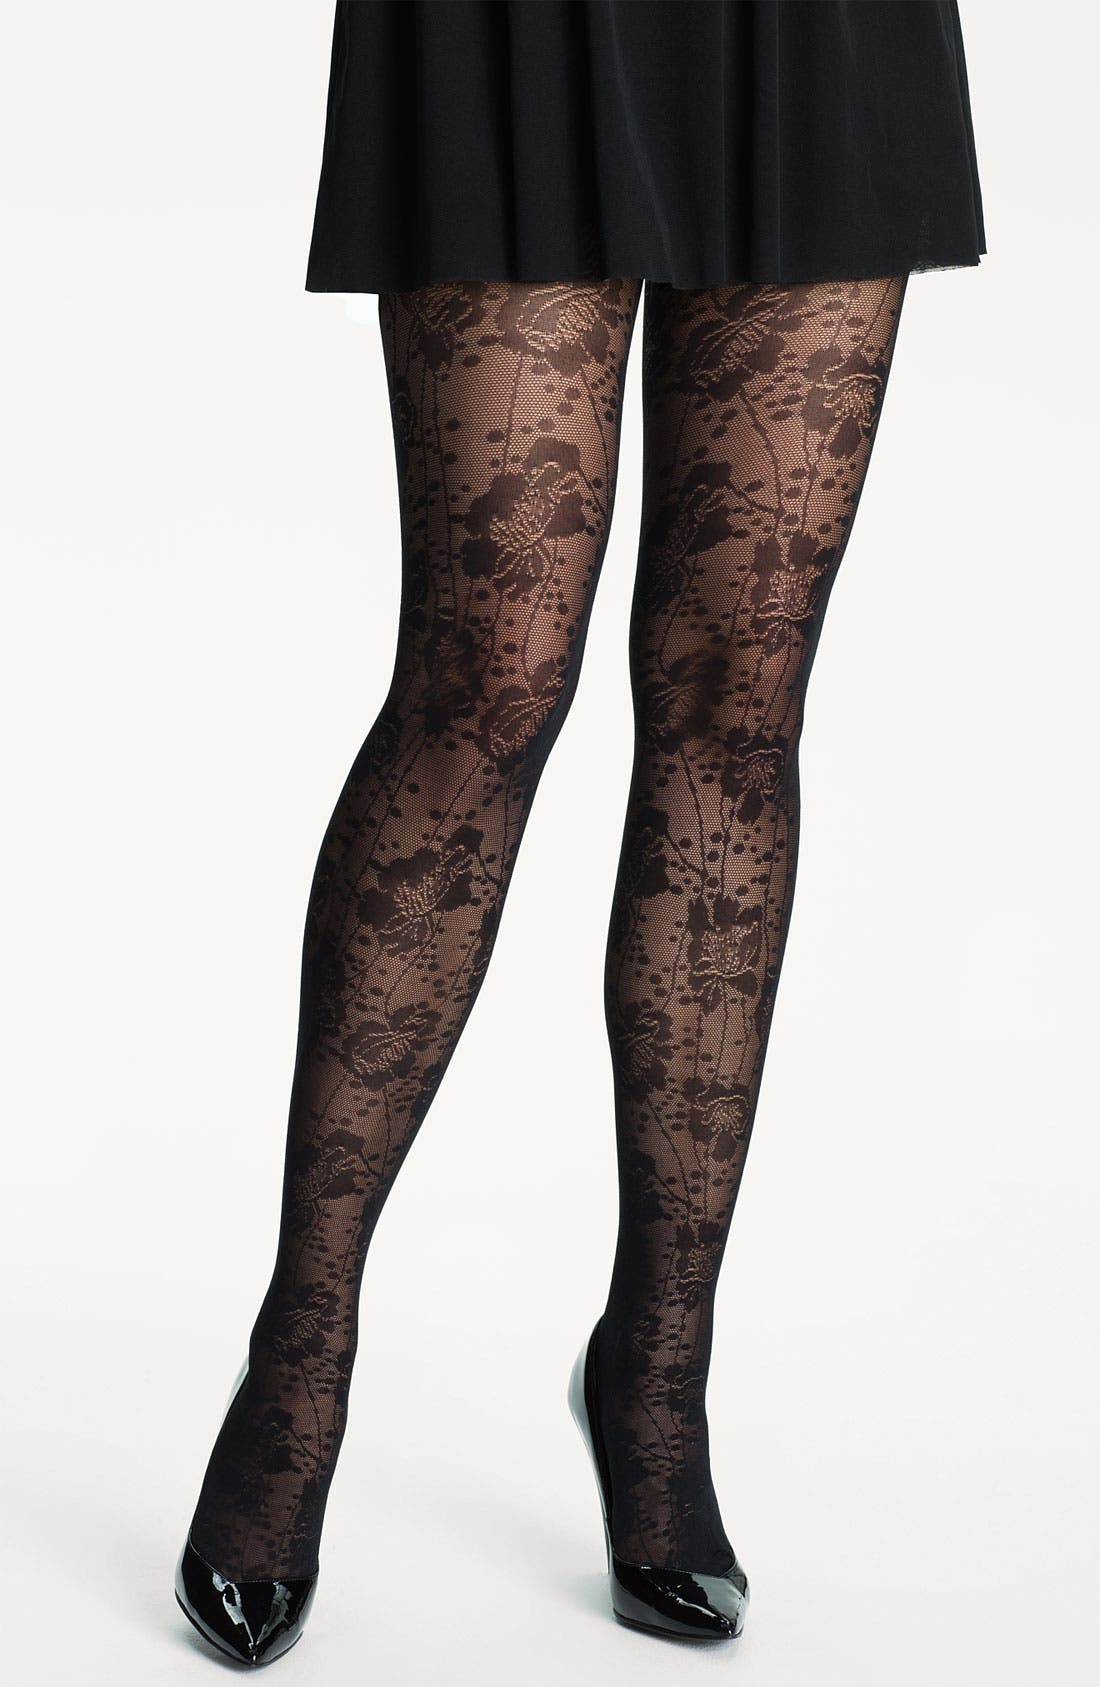 Main Image - kate spade new york spotted floral lace tights